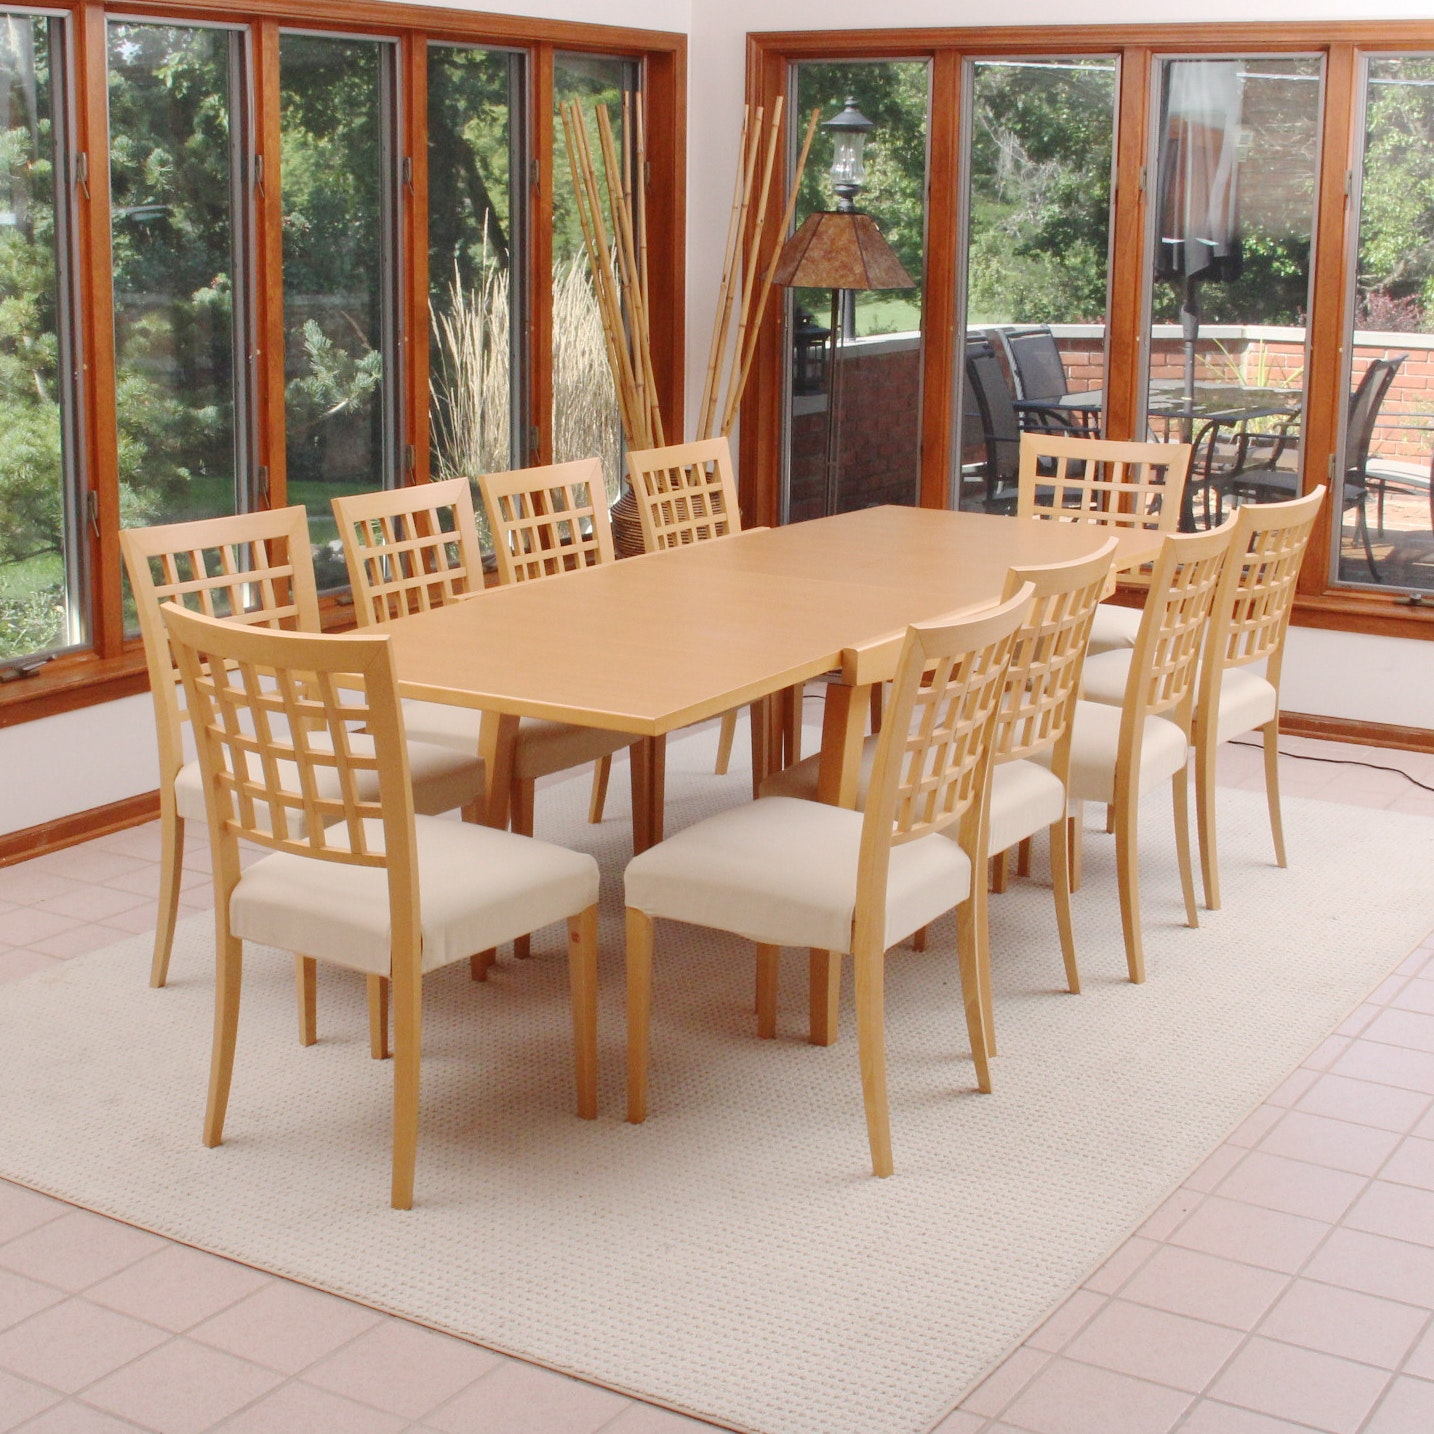 Italian Made Calligaris Expandable Table and Ten Matching Chairs